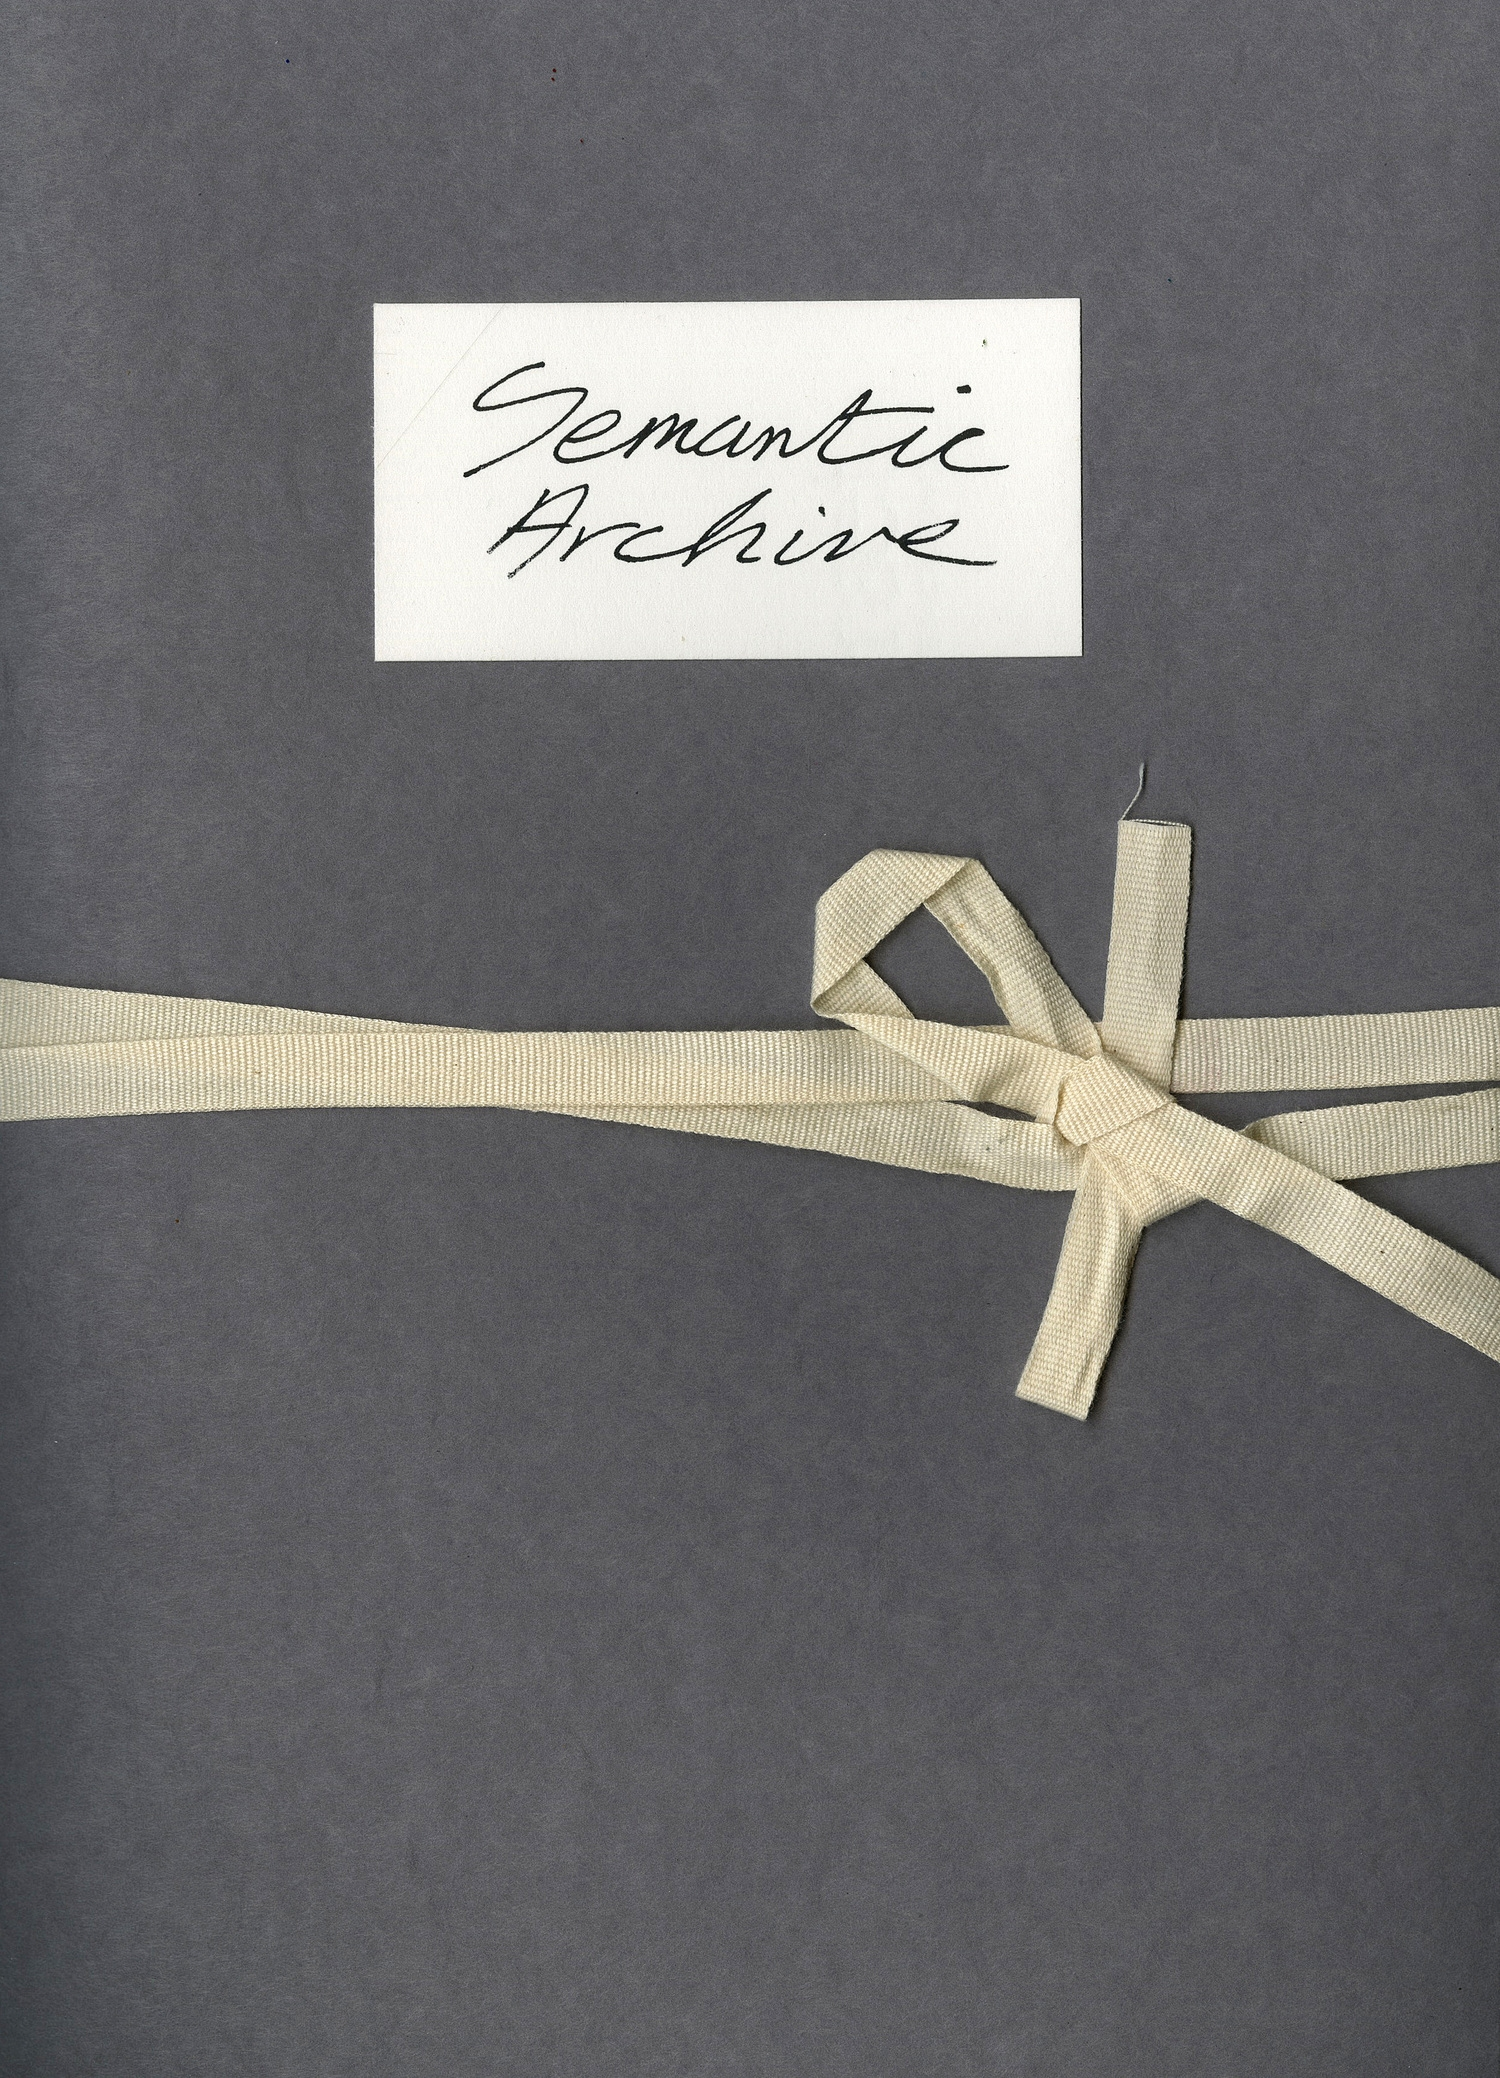 semantic archive, artists' book